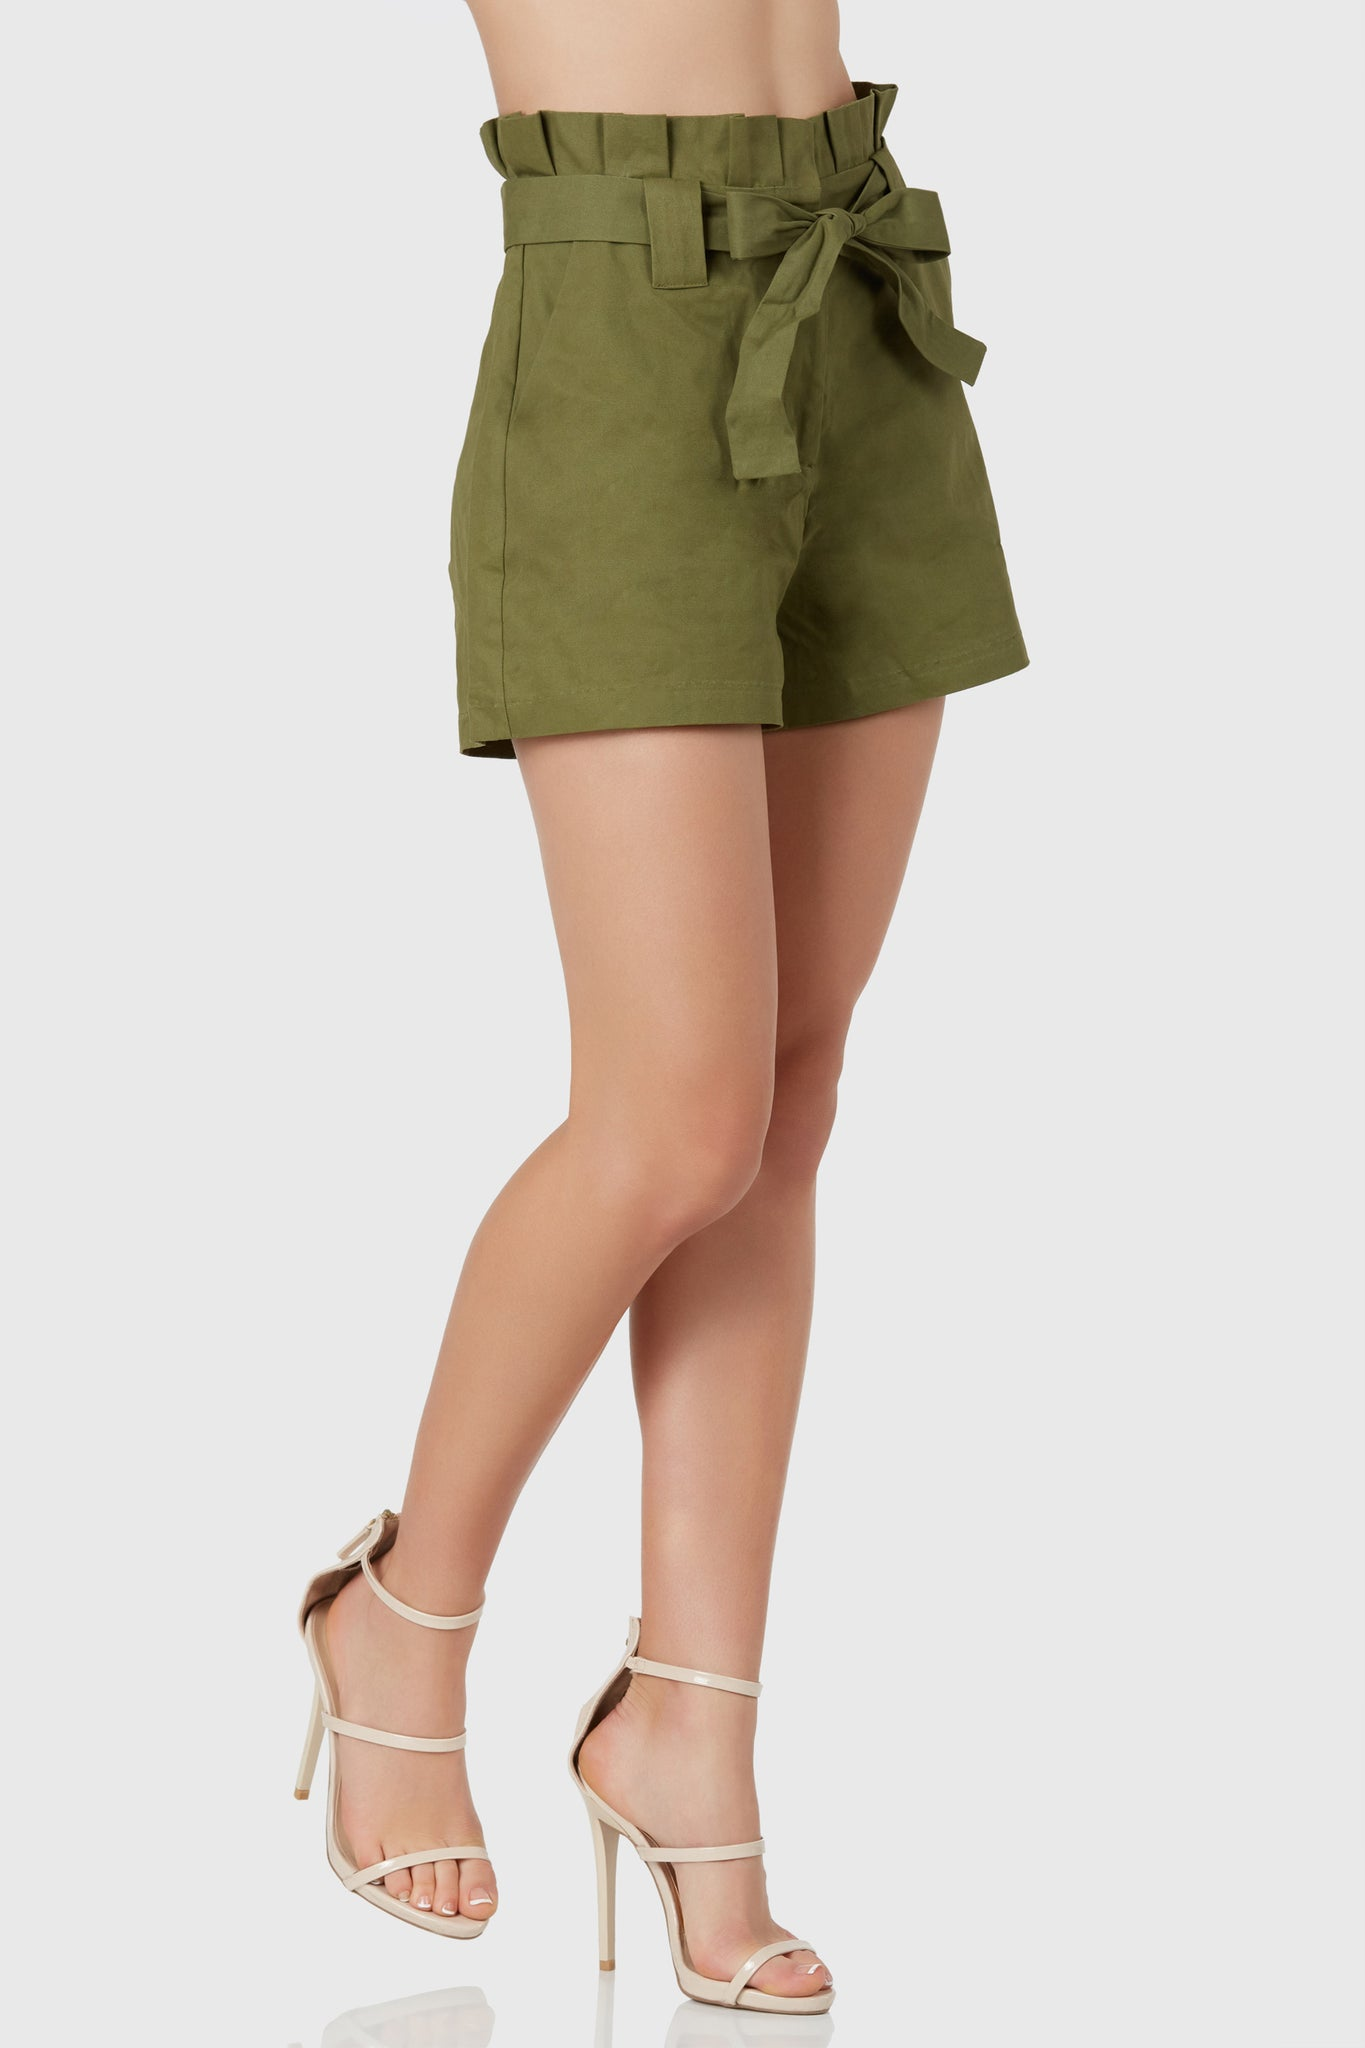 Chic high rise shorts with waist tie with cinched waist design. Side pockets with straight hem finish.